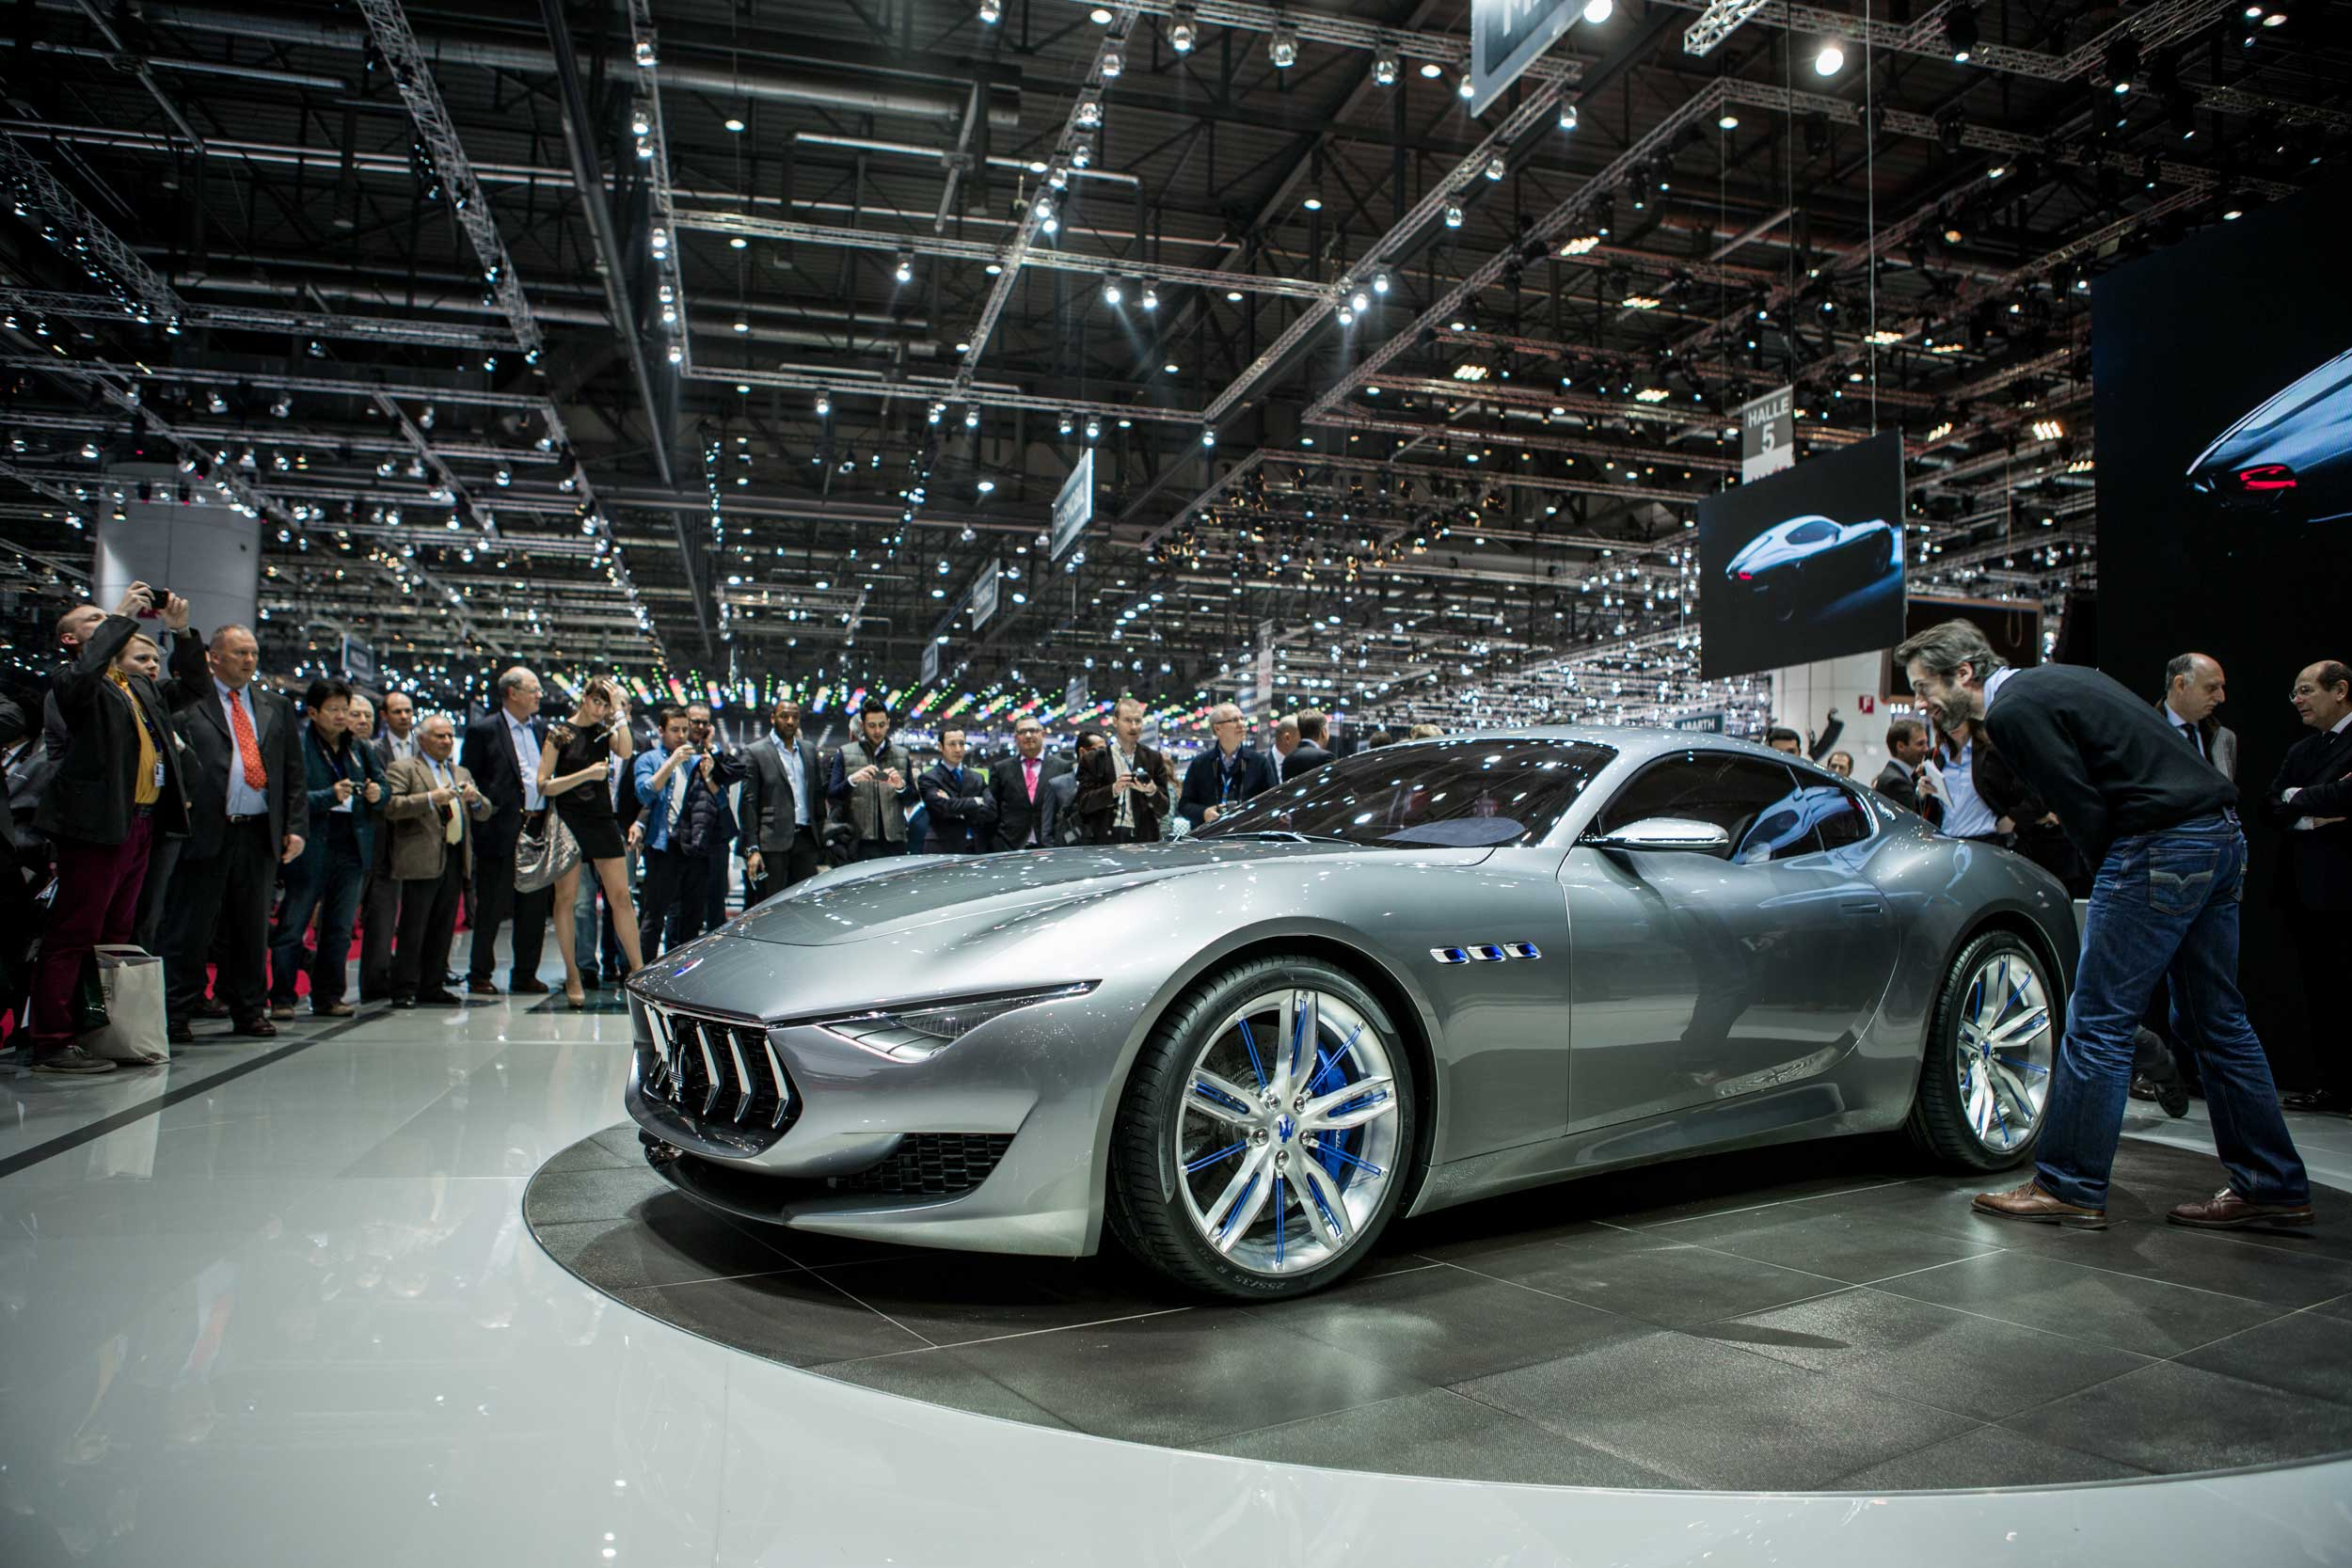 "Maserati says its Alfieri concept car represents ""the future of Maserati design."" Too bad most of us can't conceptualize being able to afford a Maserati any time soon."